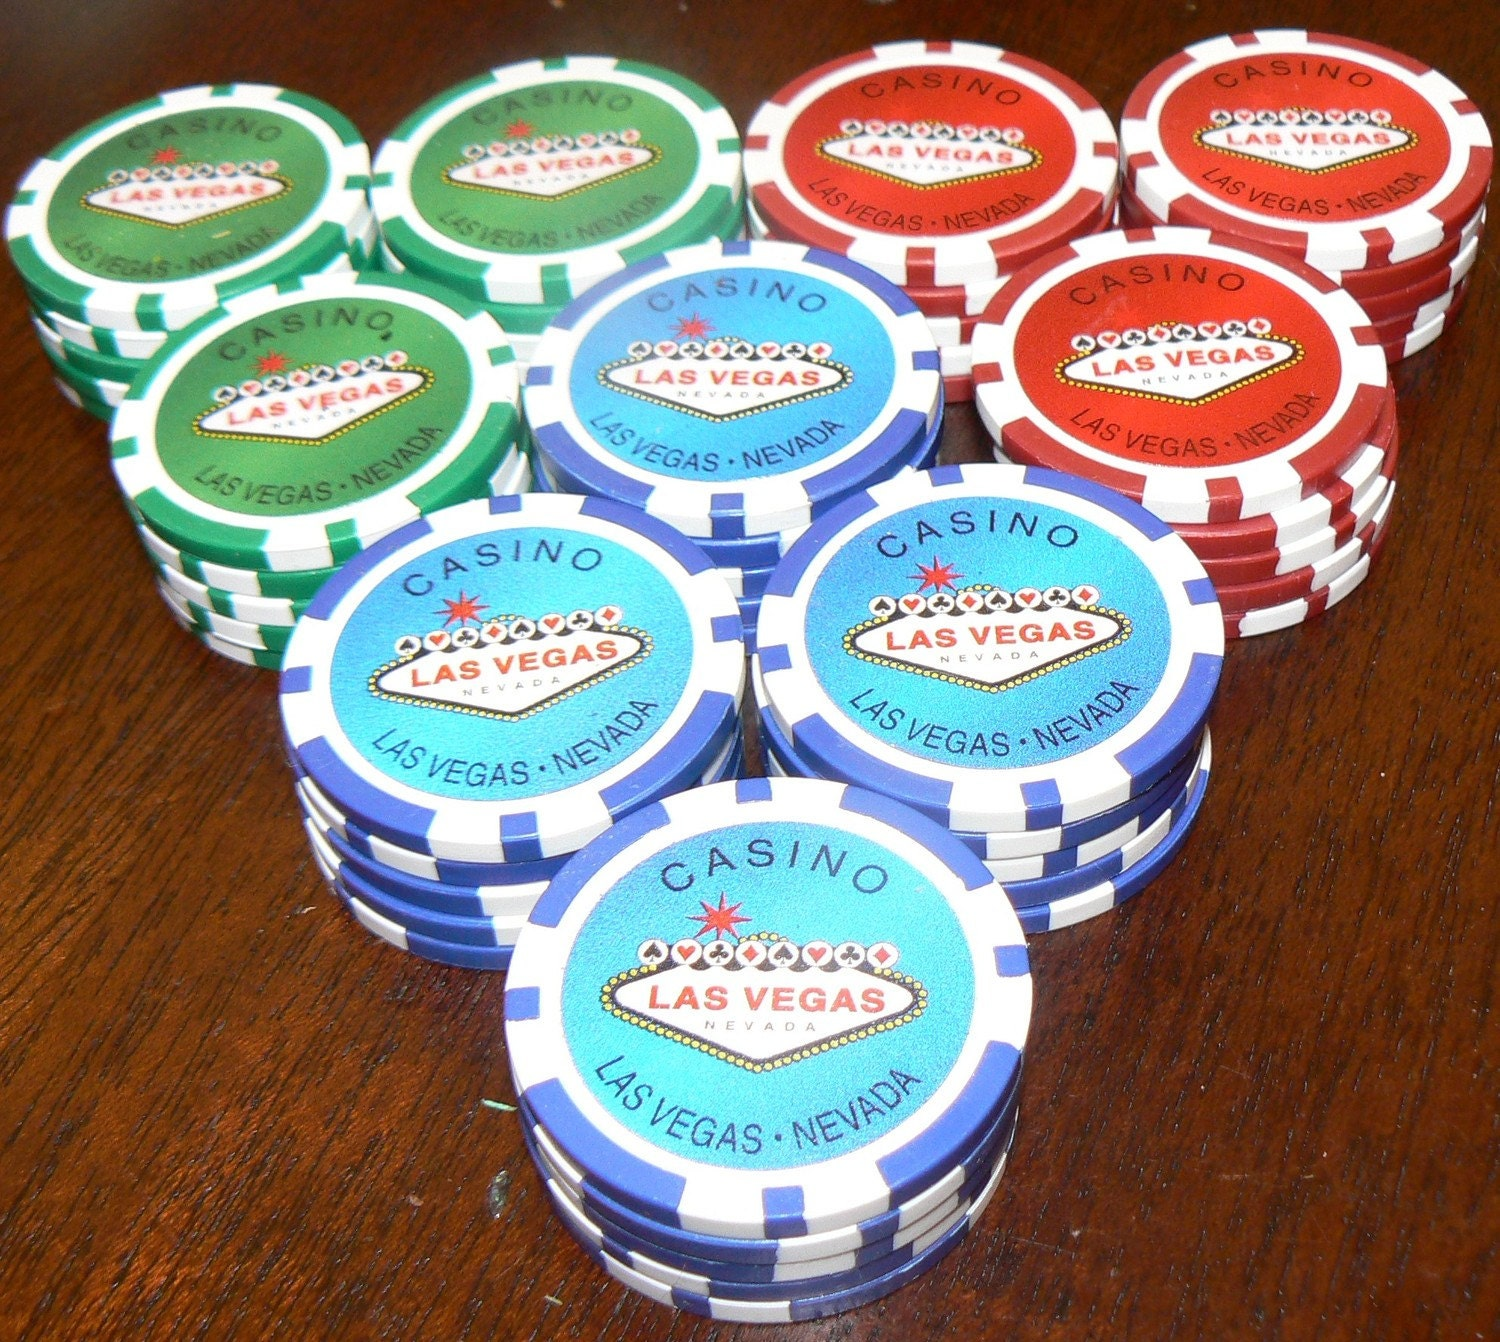 Poker chips eu - 44408